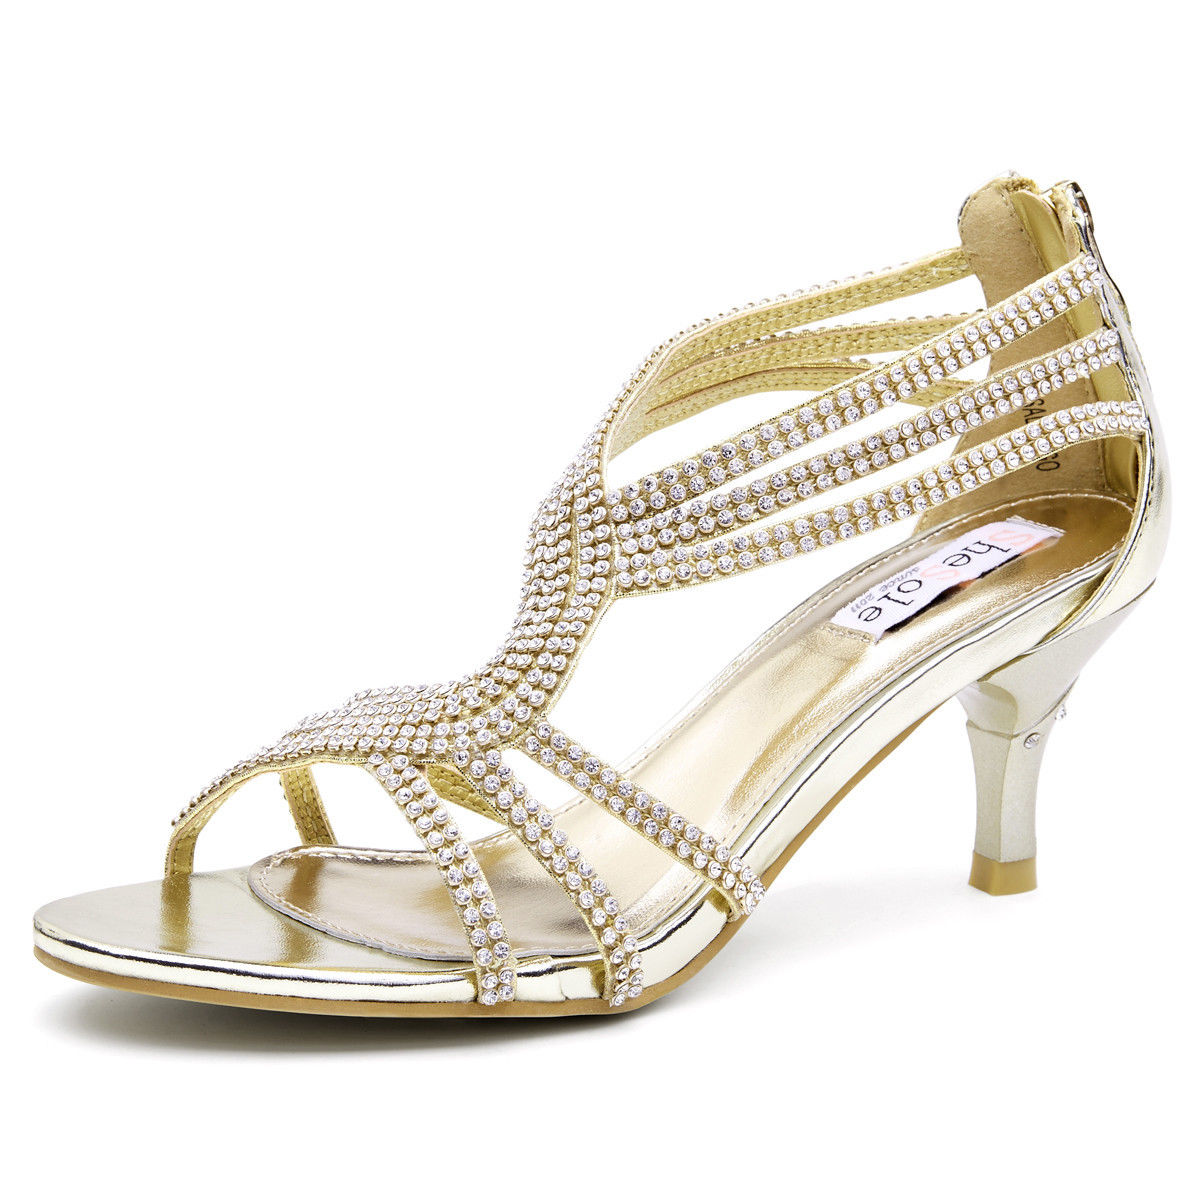 Womens-Ladies-Low-Kitten-Heel-Wedding-Glitter-Sandals-Strappy-Silver-Shoes thumbnail 17